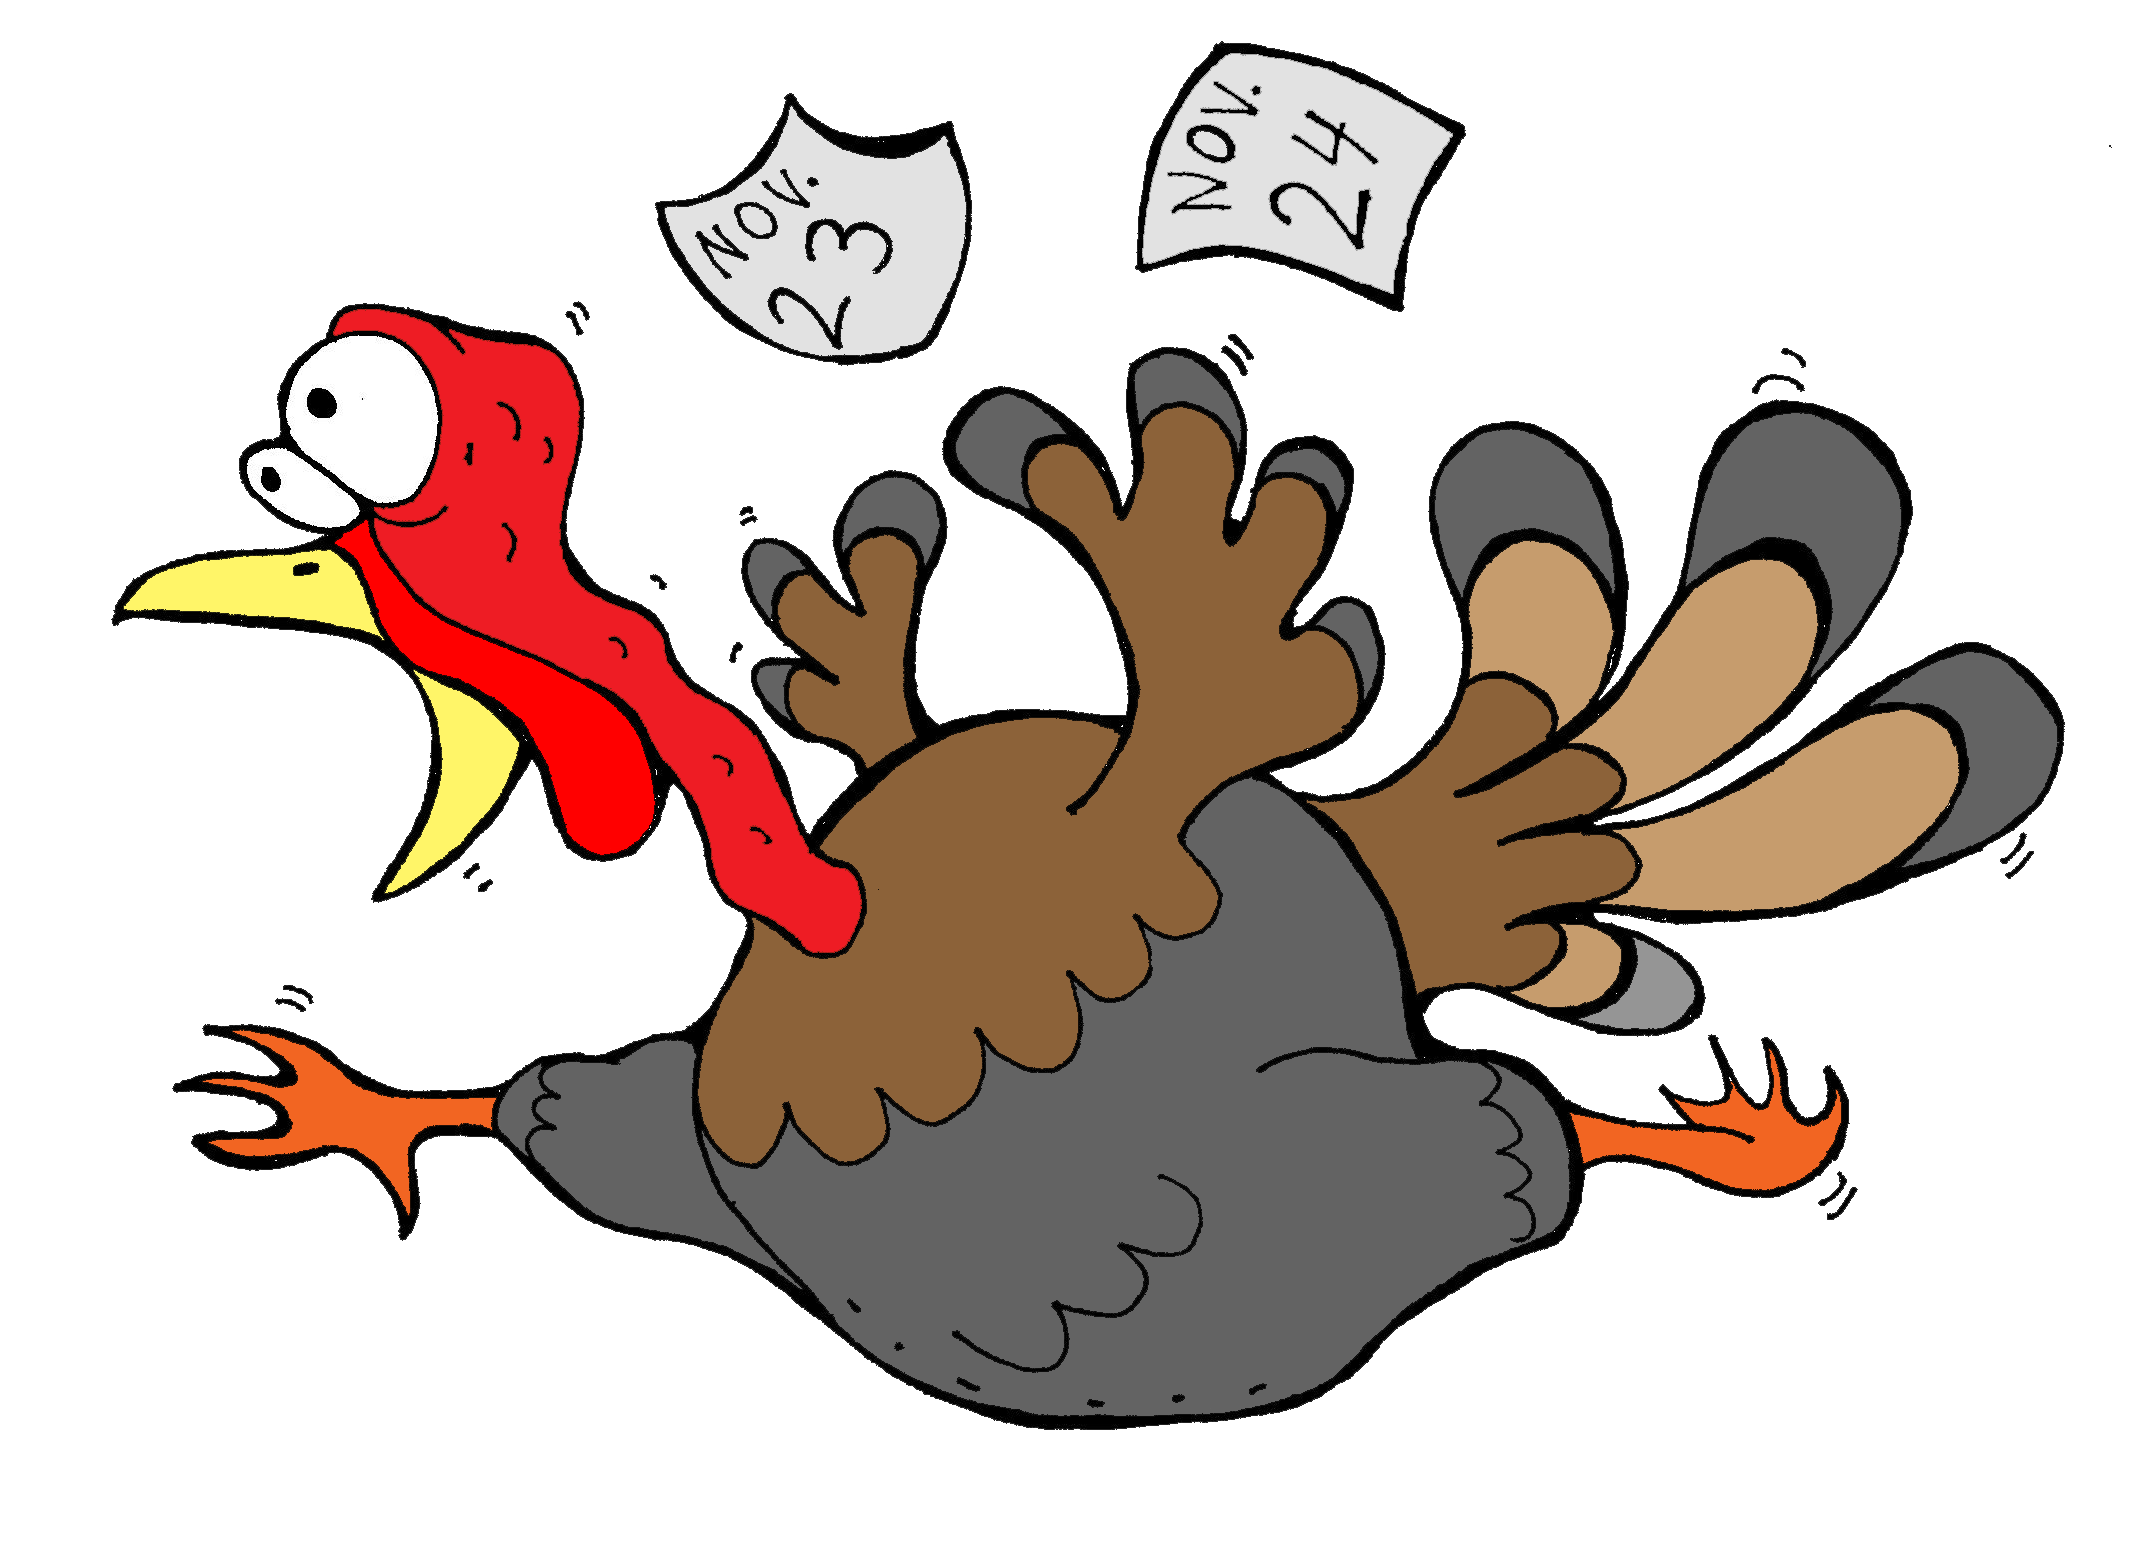 Turkey clip art vector. Scared transparent library rr